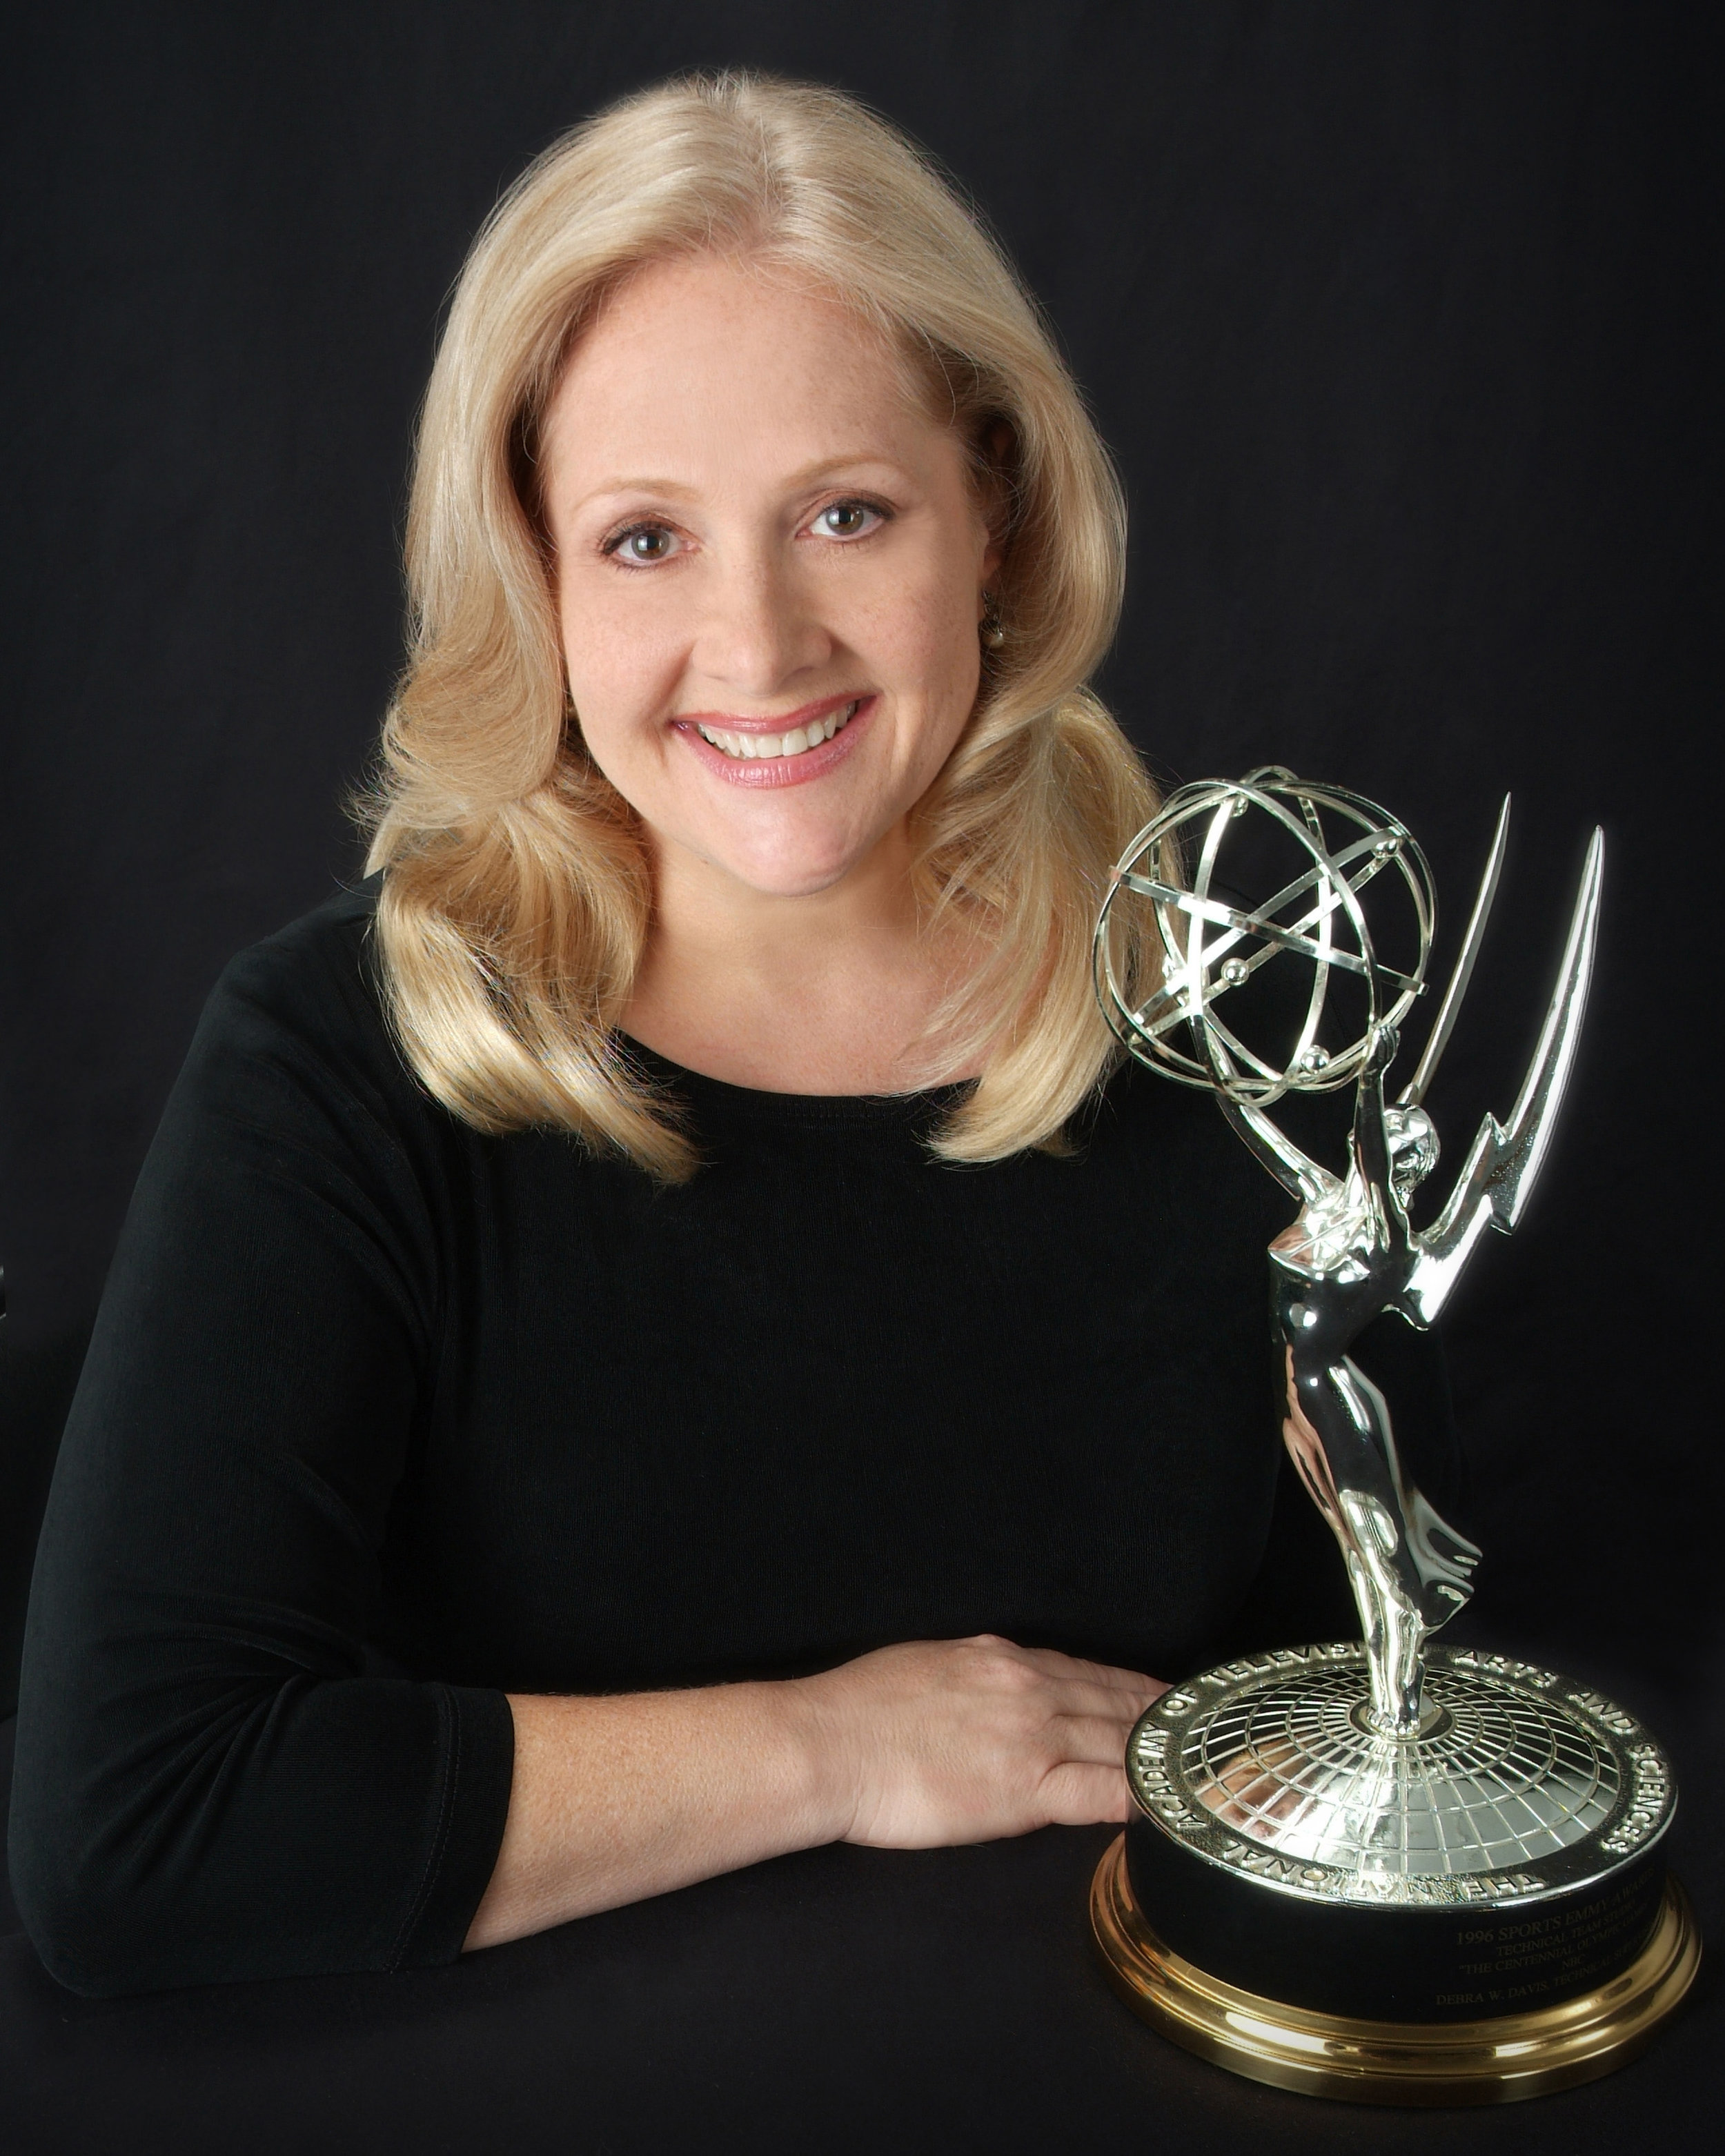 Debra Davis is an Emmy Award winning producer and a proud member of Producers Guild of America. She Creates GROUNDBREAKING MEDIA SOLUTIONS AT HIGH PROFILE EVENTS FOR BROADCAST AND IPTV. SHE SPECIALIZES IN LIVE EVENTS, FESTIVALS, LIVE MUSIC, TELEVISION SERIES, AWARD SHOWS, CORPORATE ENTERTAINMENT, MEETINGS AND GALAS. LISTEN TO THIS PODCAST WHERE DEBRA DISCUSSES WHAT IT TAKES TO PRODUCE A GROUND-BREAKING WEBCAST, RESULTING IN OVER 82 MILLION VIEWS. Listen here. -